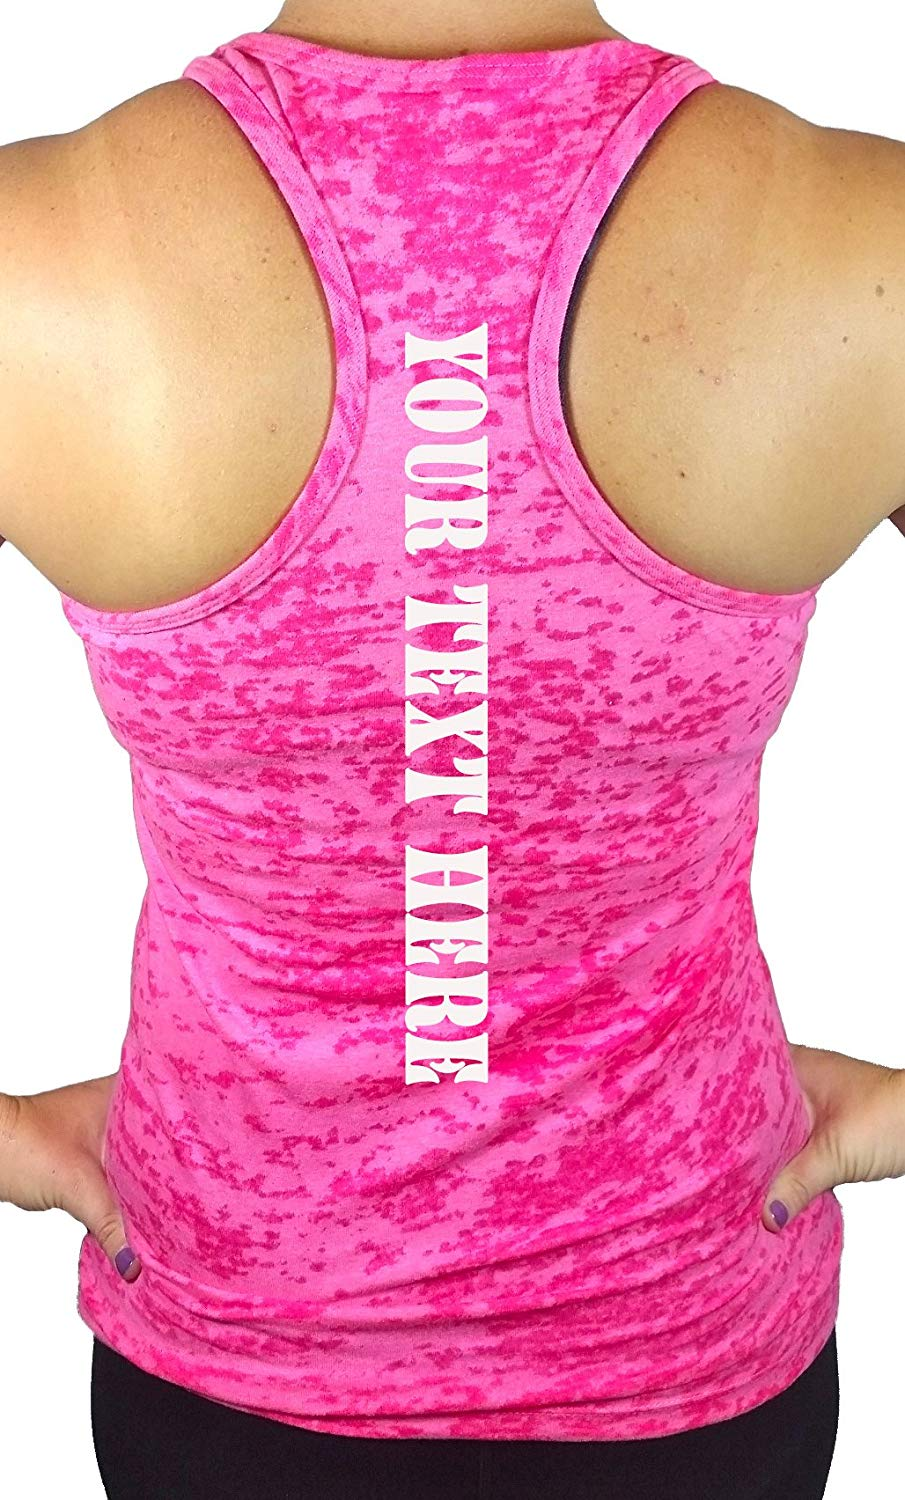 eb62c6e12 Get Quotations · Womens Custom Tank Top Workout Racerback Design & Personalize  Your own Tank top Shirt.